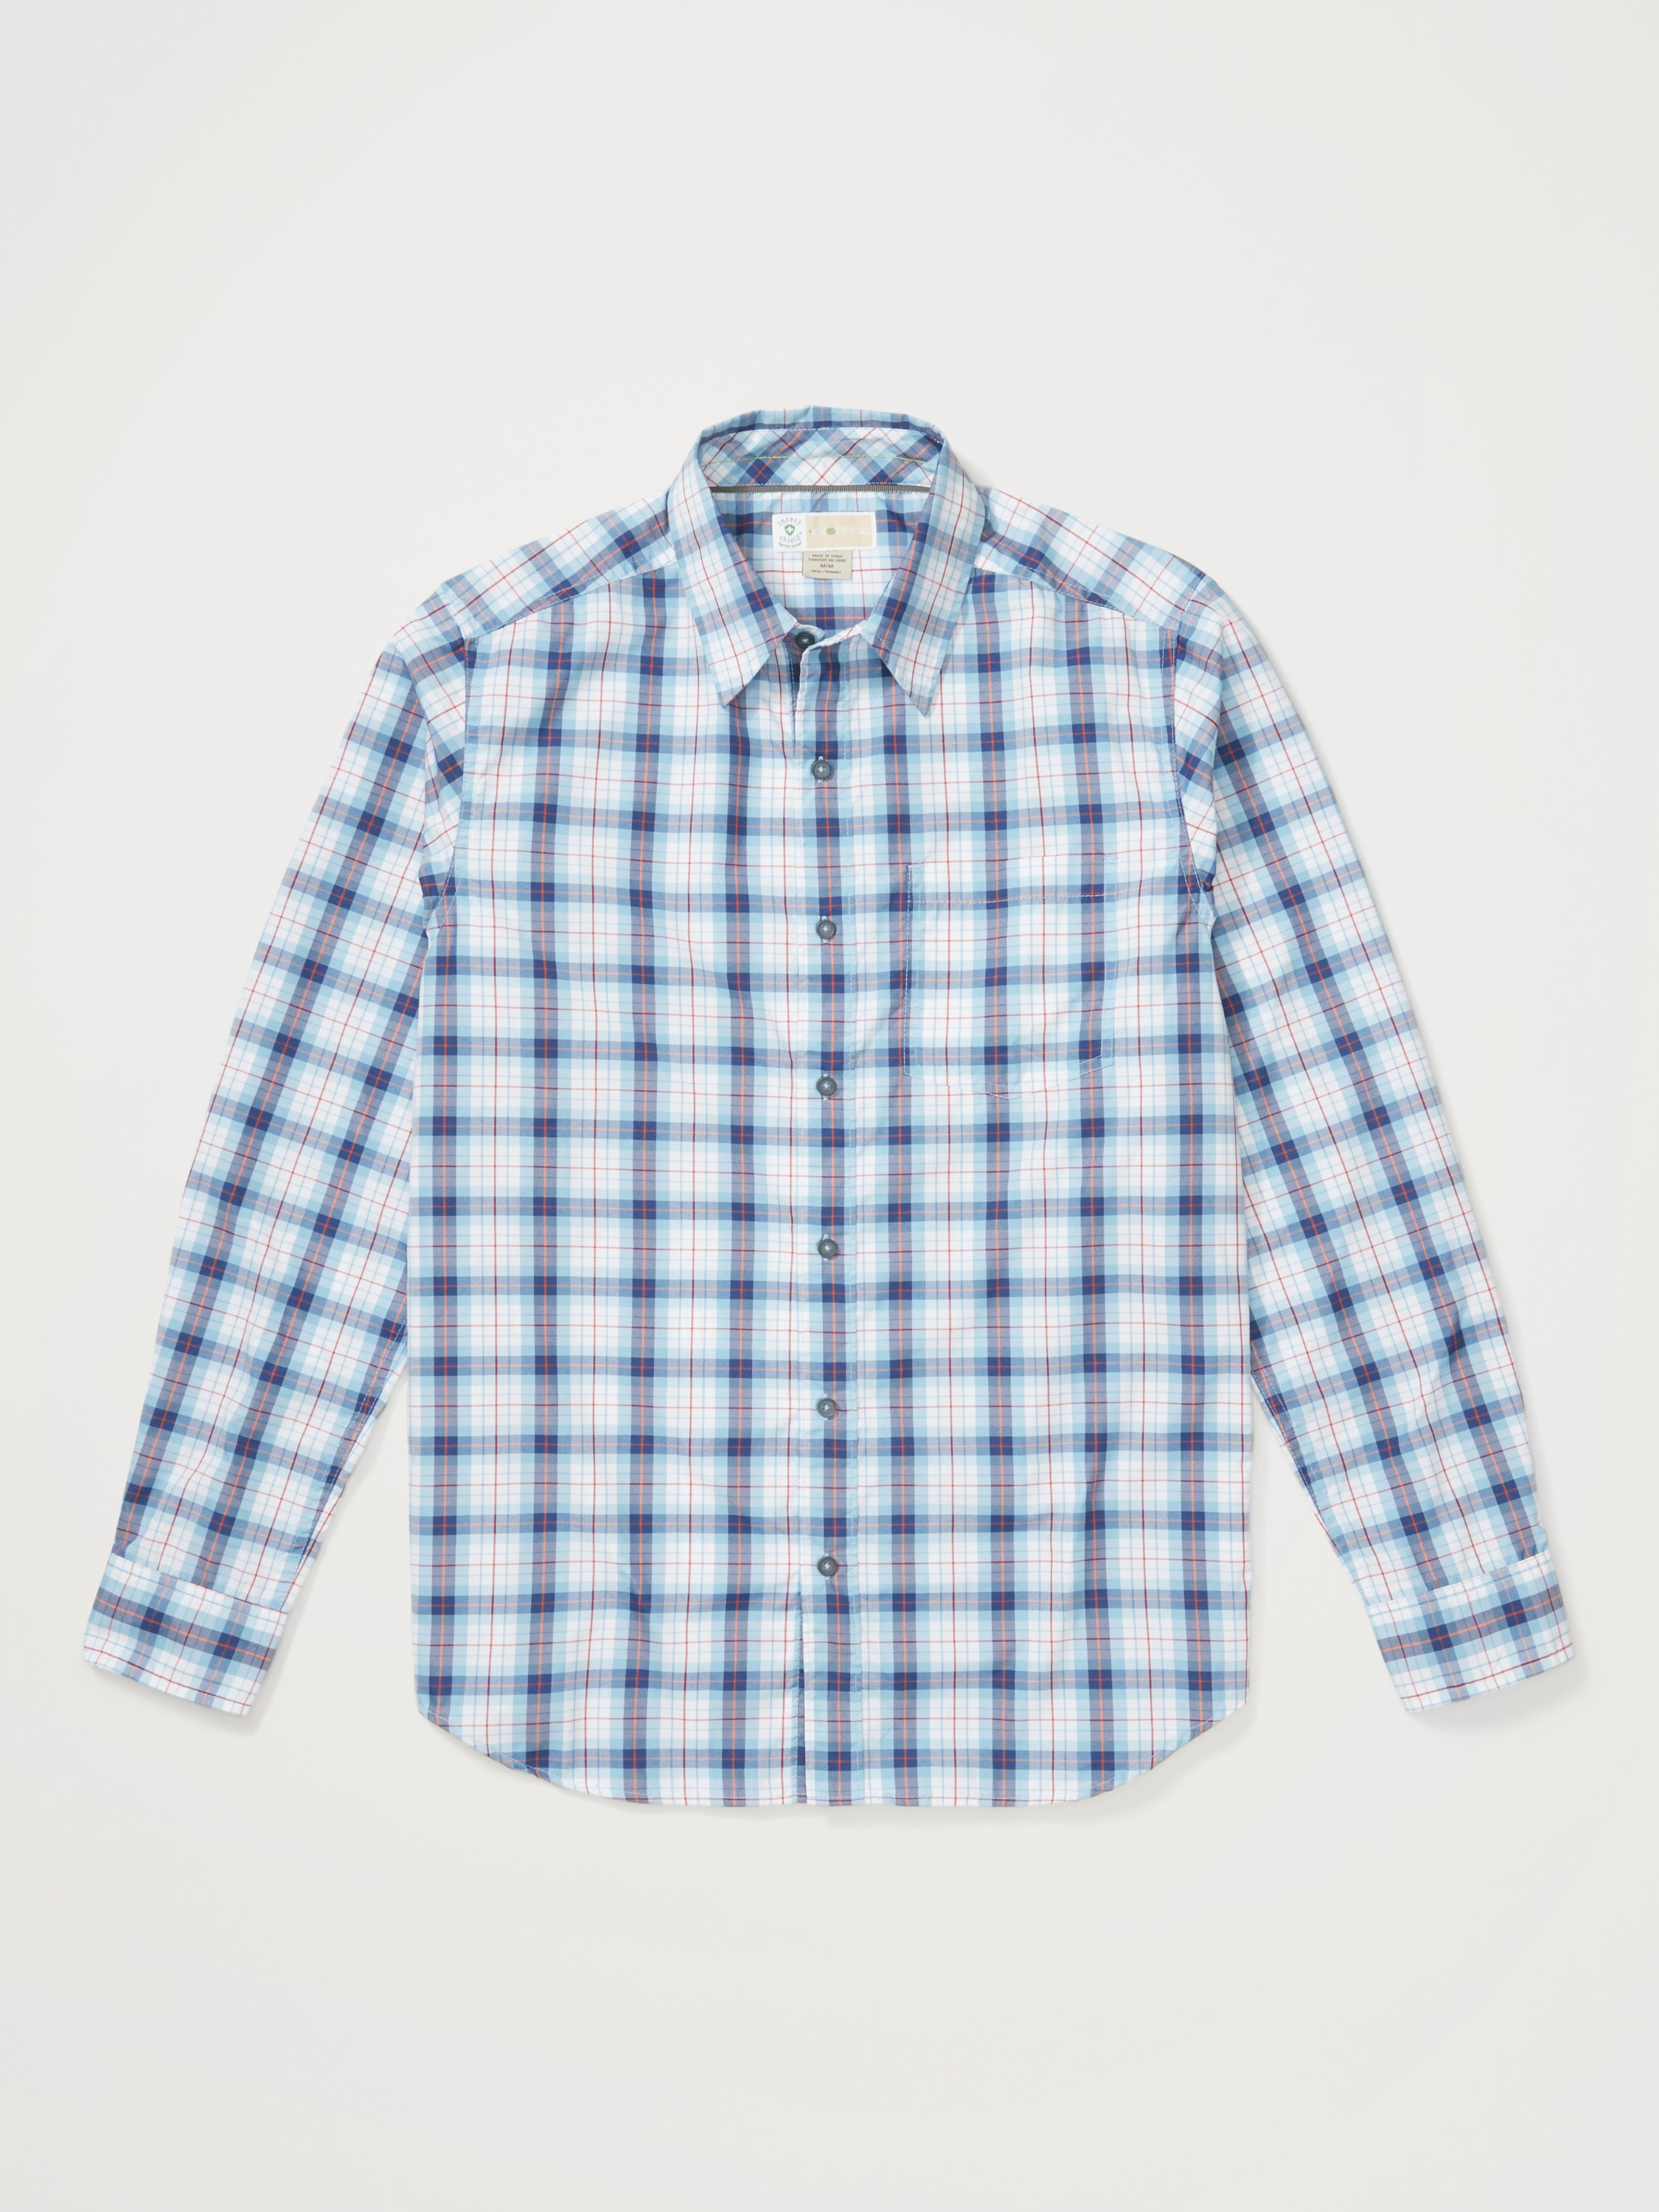 ExOfficio Mens Okanagan Mini Check Long Sleeve Shirt 10012963-5600/_XL